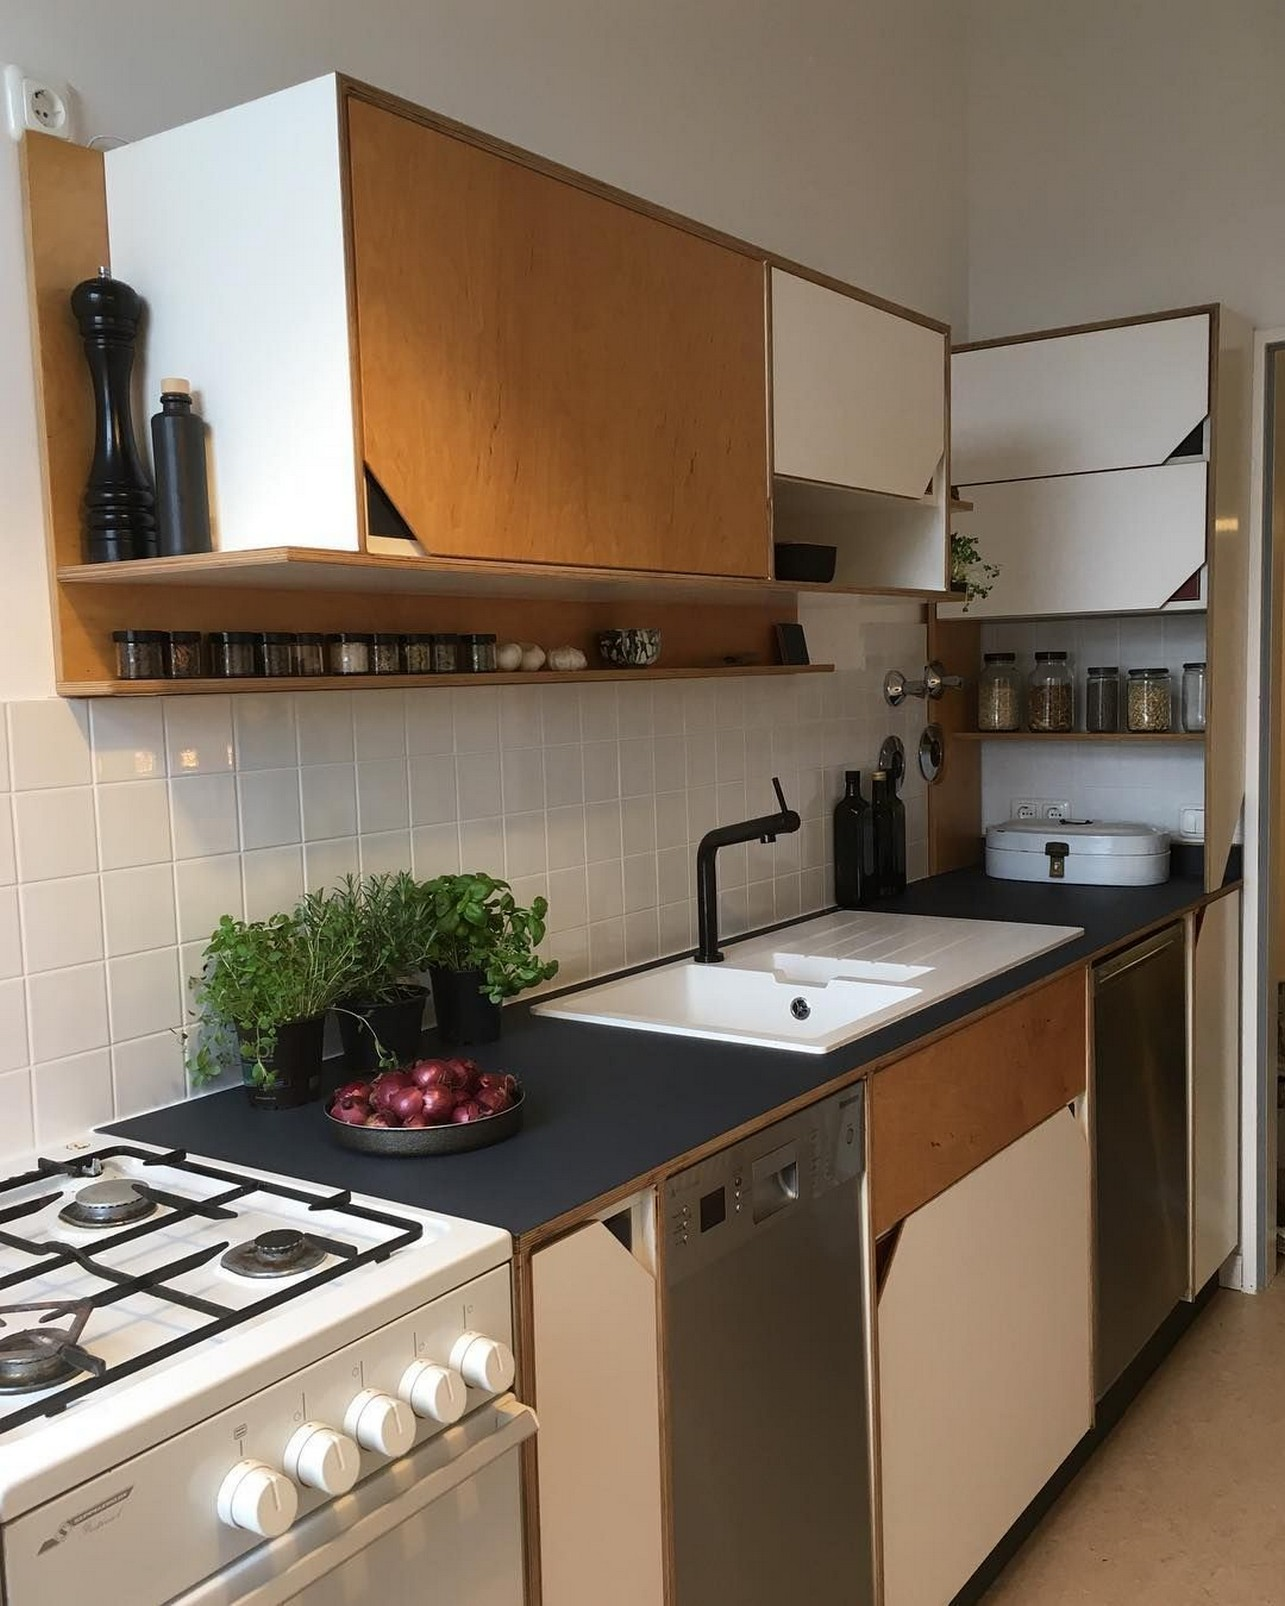 86 Some Small Kitchen Ideas To Help You Do Up Your Kitchen 76